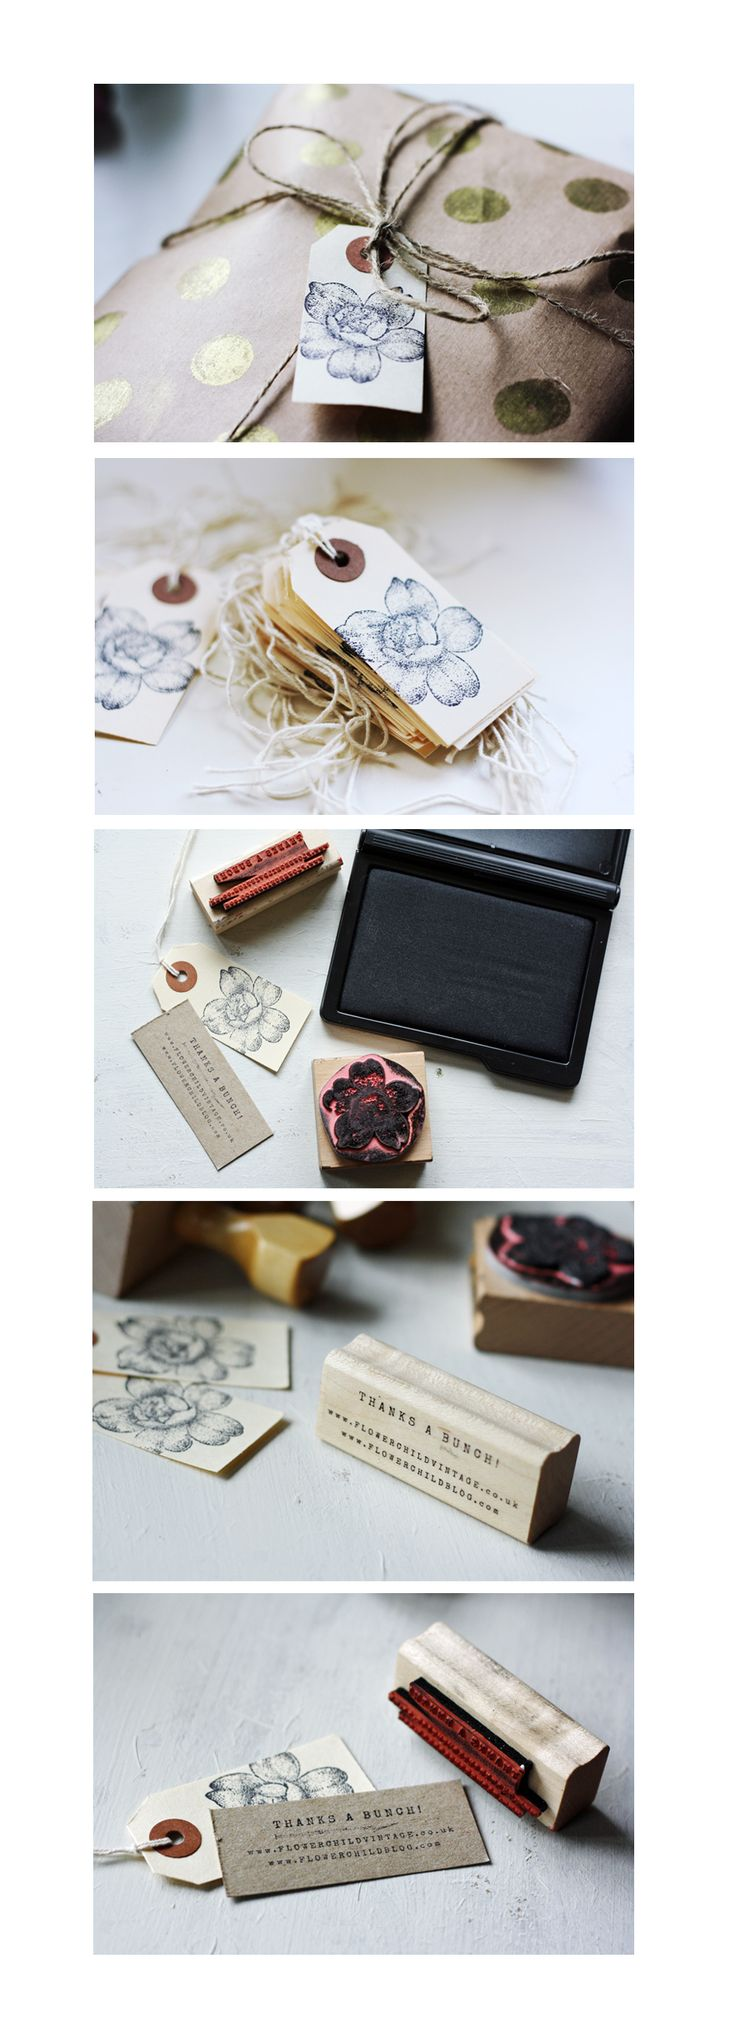 Print & packaging design by Betty Red Design | for Flower Child Vintage